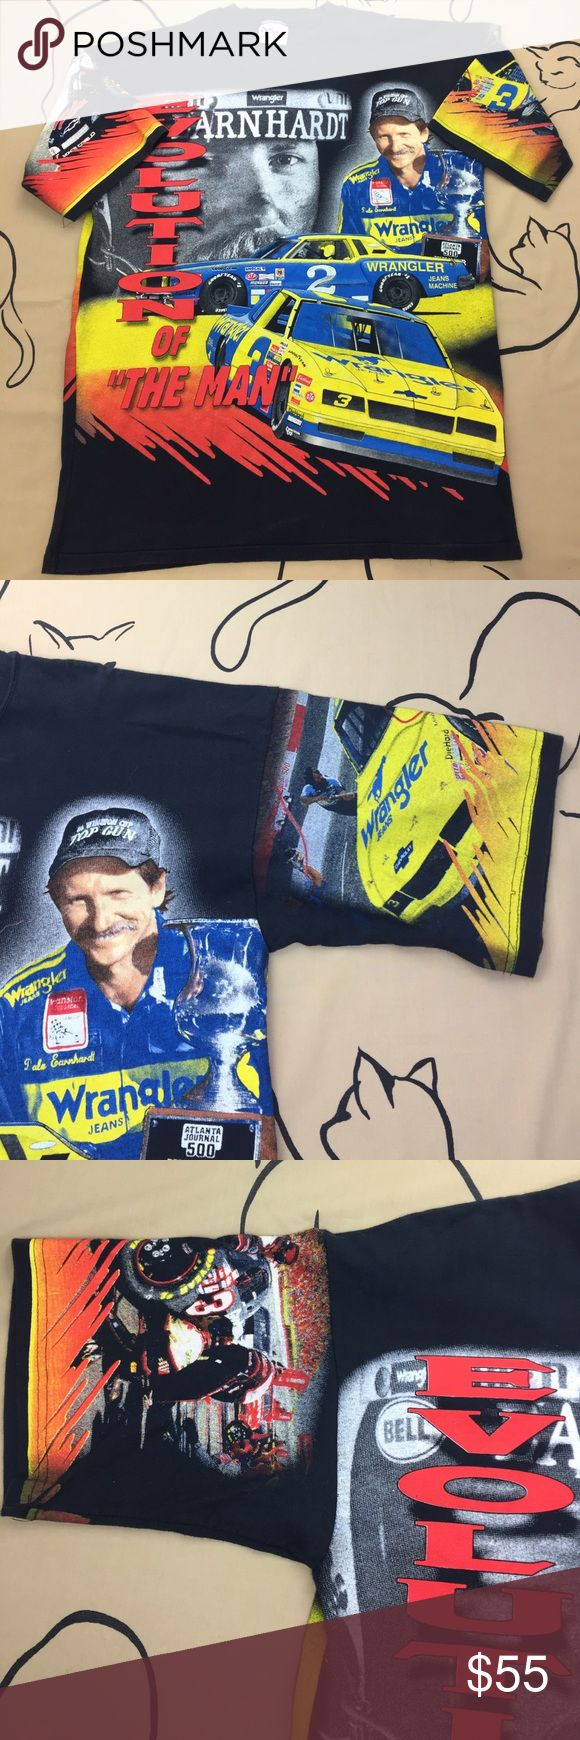 VTG/Rare 1988 Dale Earnhardt NASCAR T-Shirt EUC worn exactly once 9.5 Out if 10. Very rare double sided Dale Earnhardt T-Shirt depicting the evolution of his career. One side has the early images of his Wrangler car and the other His Classic black Goodwrench car. Official NASCAR shirt. Also depicted are all his Winston cup championships.tag says large but will also fit an extra large. NASCAR Shirts Tees - Short Sleeve